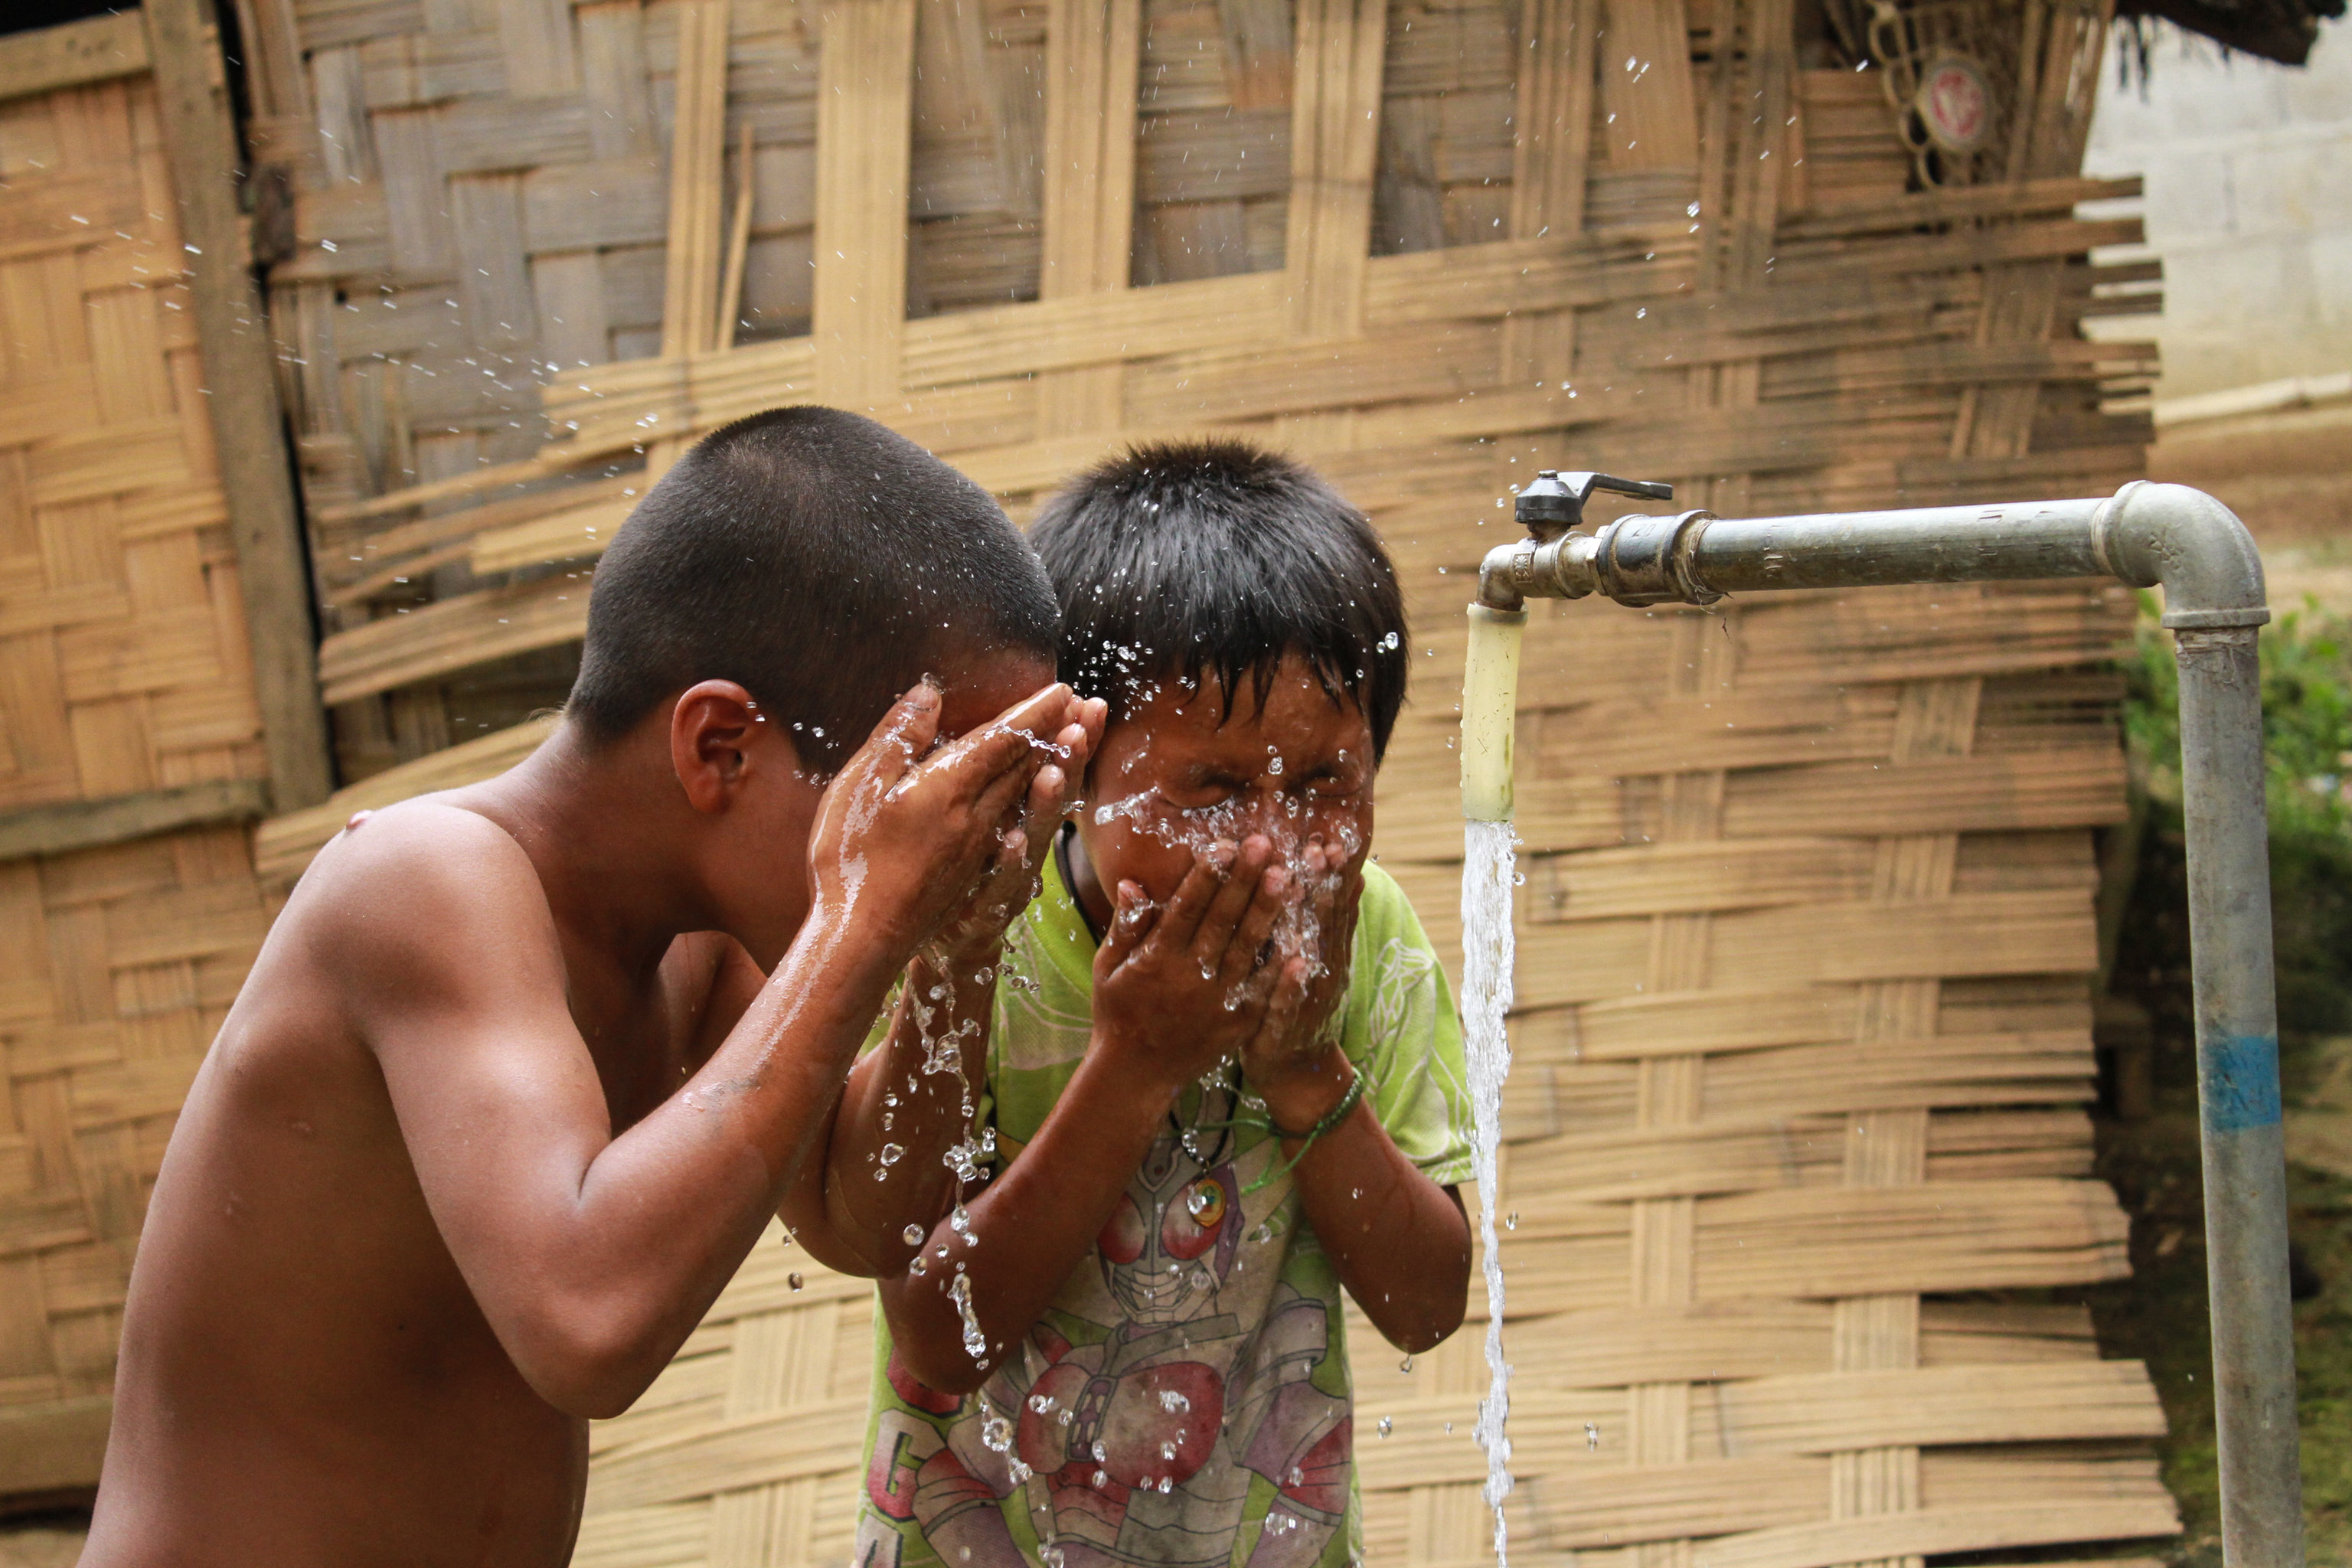 children cleaning their face